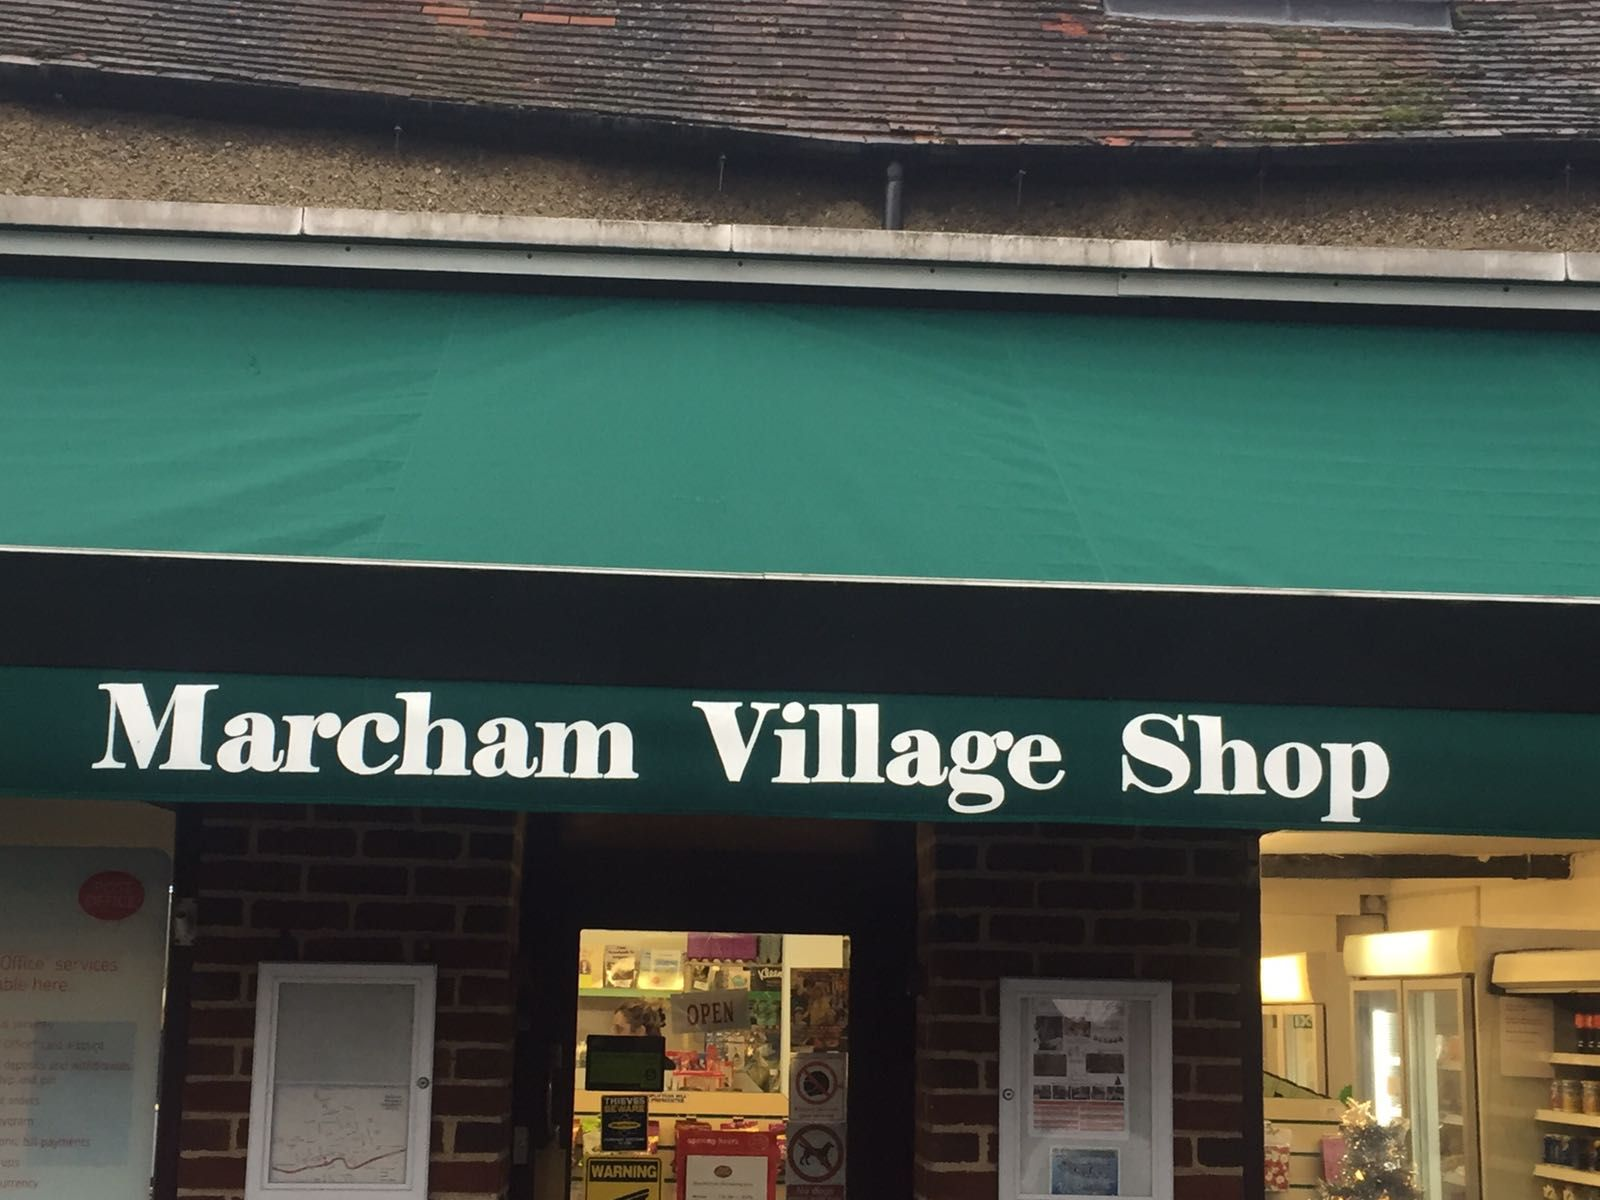 This Was A Huge Recover By Radiant Blinds Ltd For Marcham Village Shop In Oxfordshire Earlier Today At Nearly 9m Wide You Can Shop Awning Village Shop Blinds